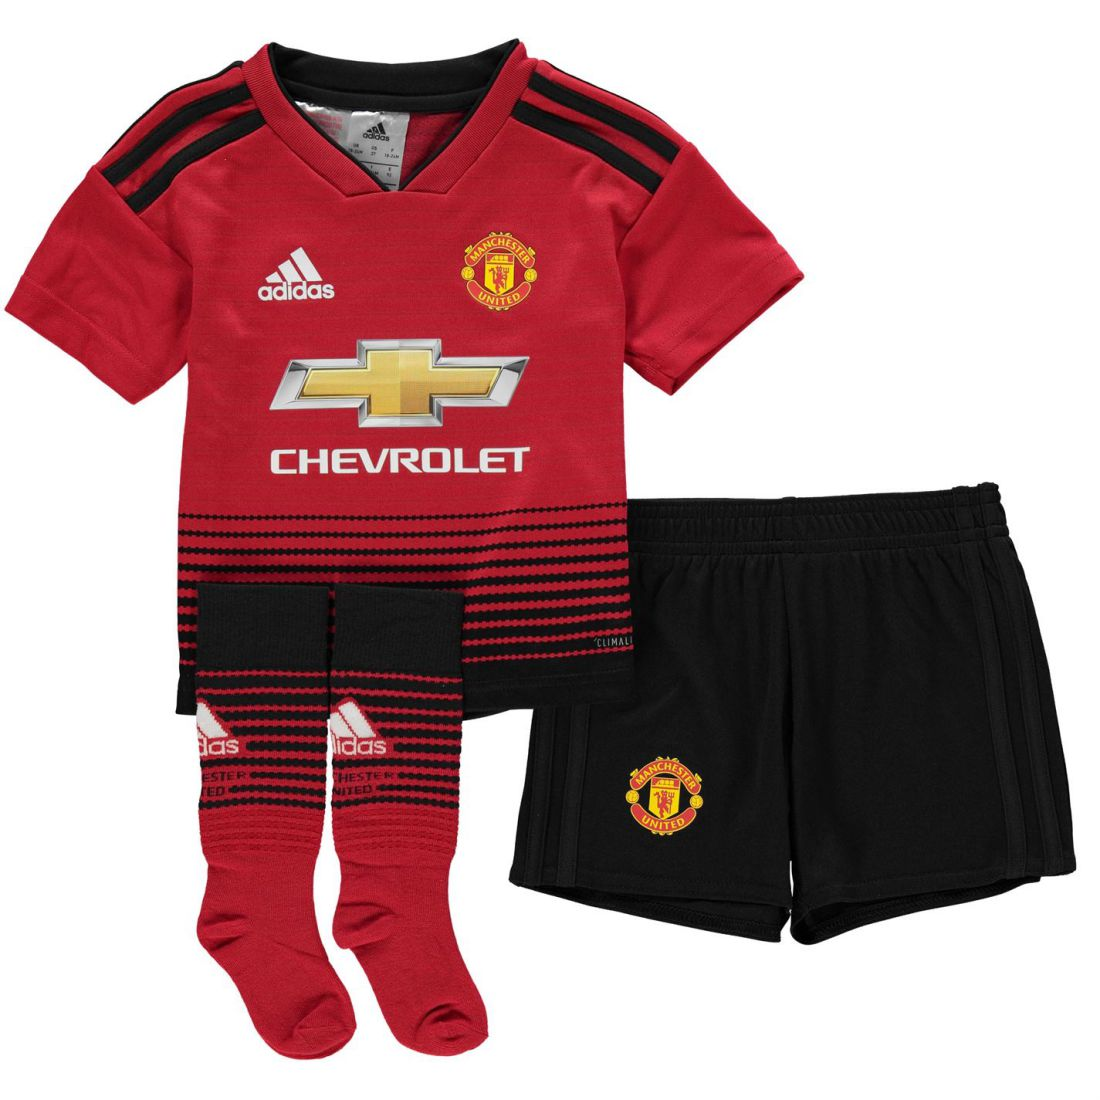 a79b05d1a adidas Manchester United Home Mini Kit 2018 2019 Childrens ...